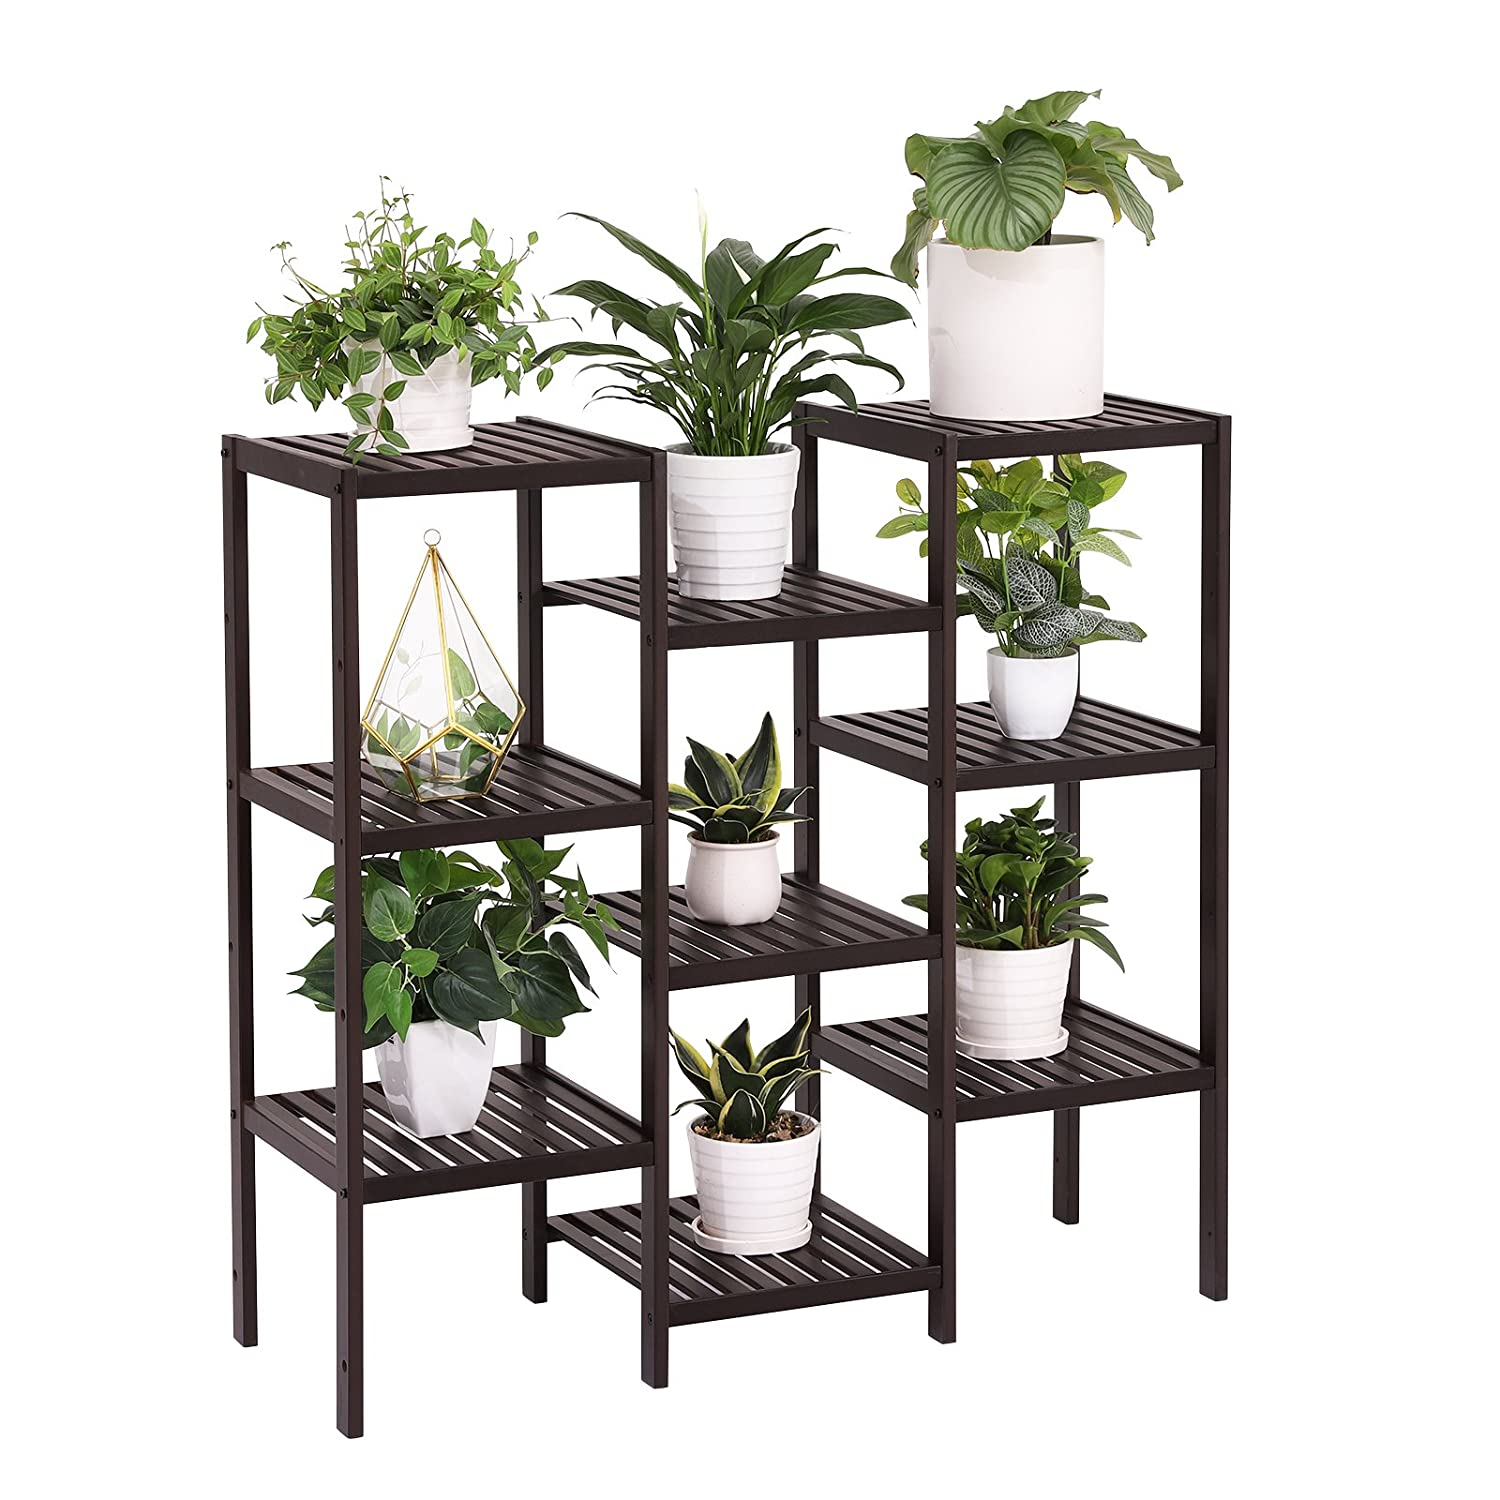 Amazon.com  SONGMICS Bamboo Customizable Plant Stand Flower Pots Holder Display Utility Shelf Bathroom Storage Rack Shelving Unit Brown UBCB93BR  Garden \u0026 ...  sc 1 st  Amazon.com & Amazon.com : SONGMICS Bamboo Customizable Plant Stand Flower Pots ...